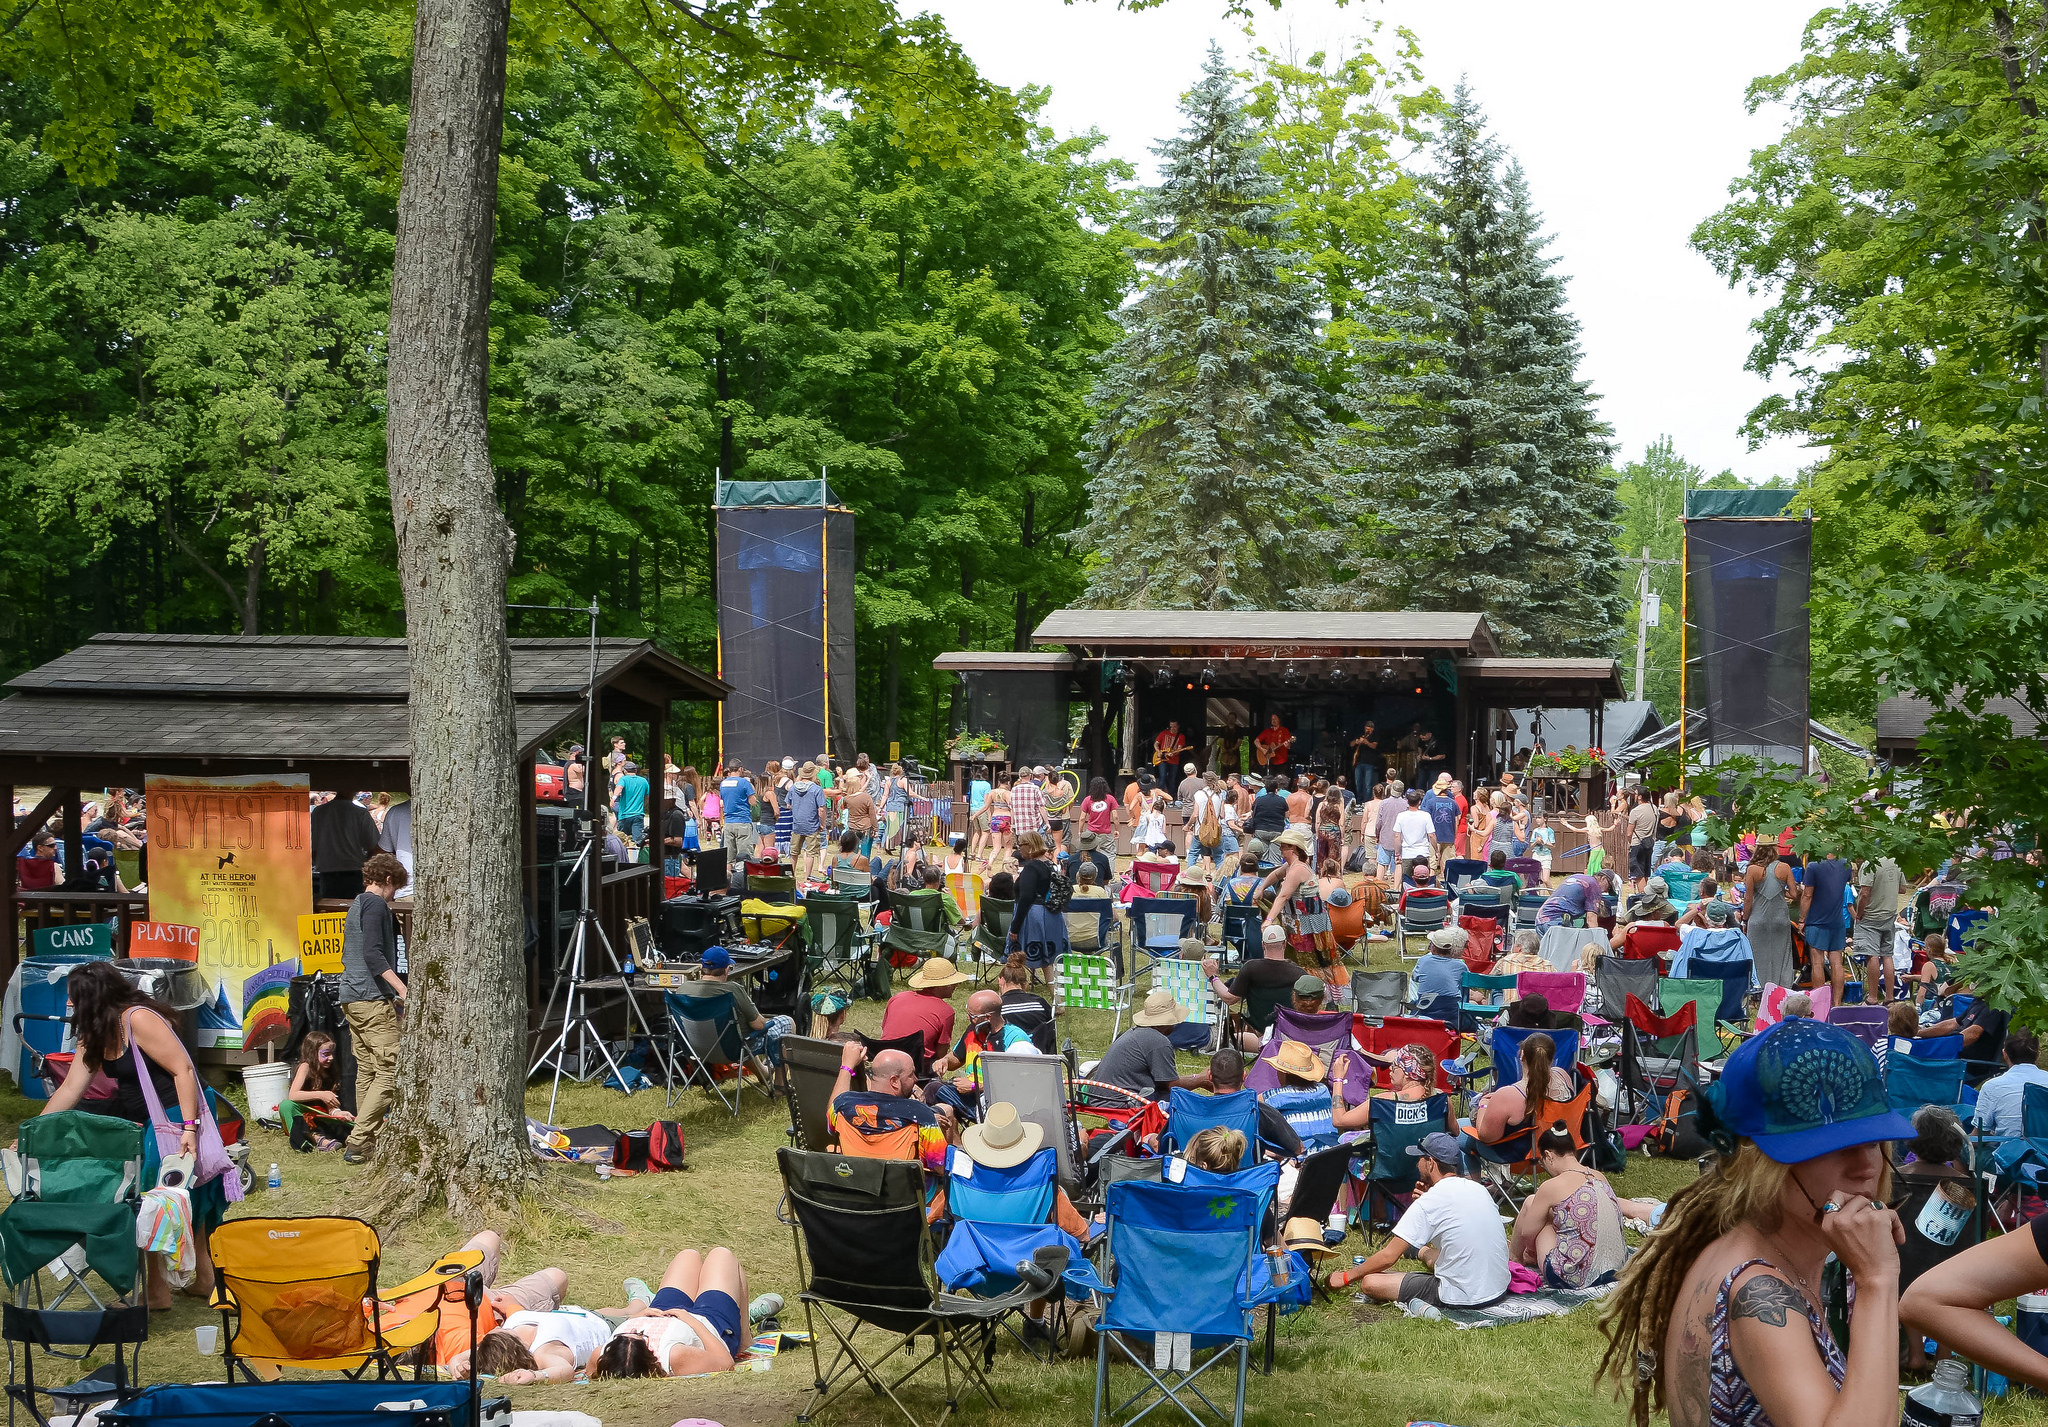 VIDEO: Jim Donovan discusses playing the Great Blue Heron Music Festival